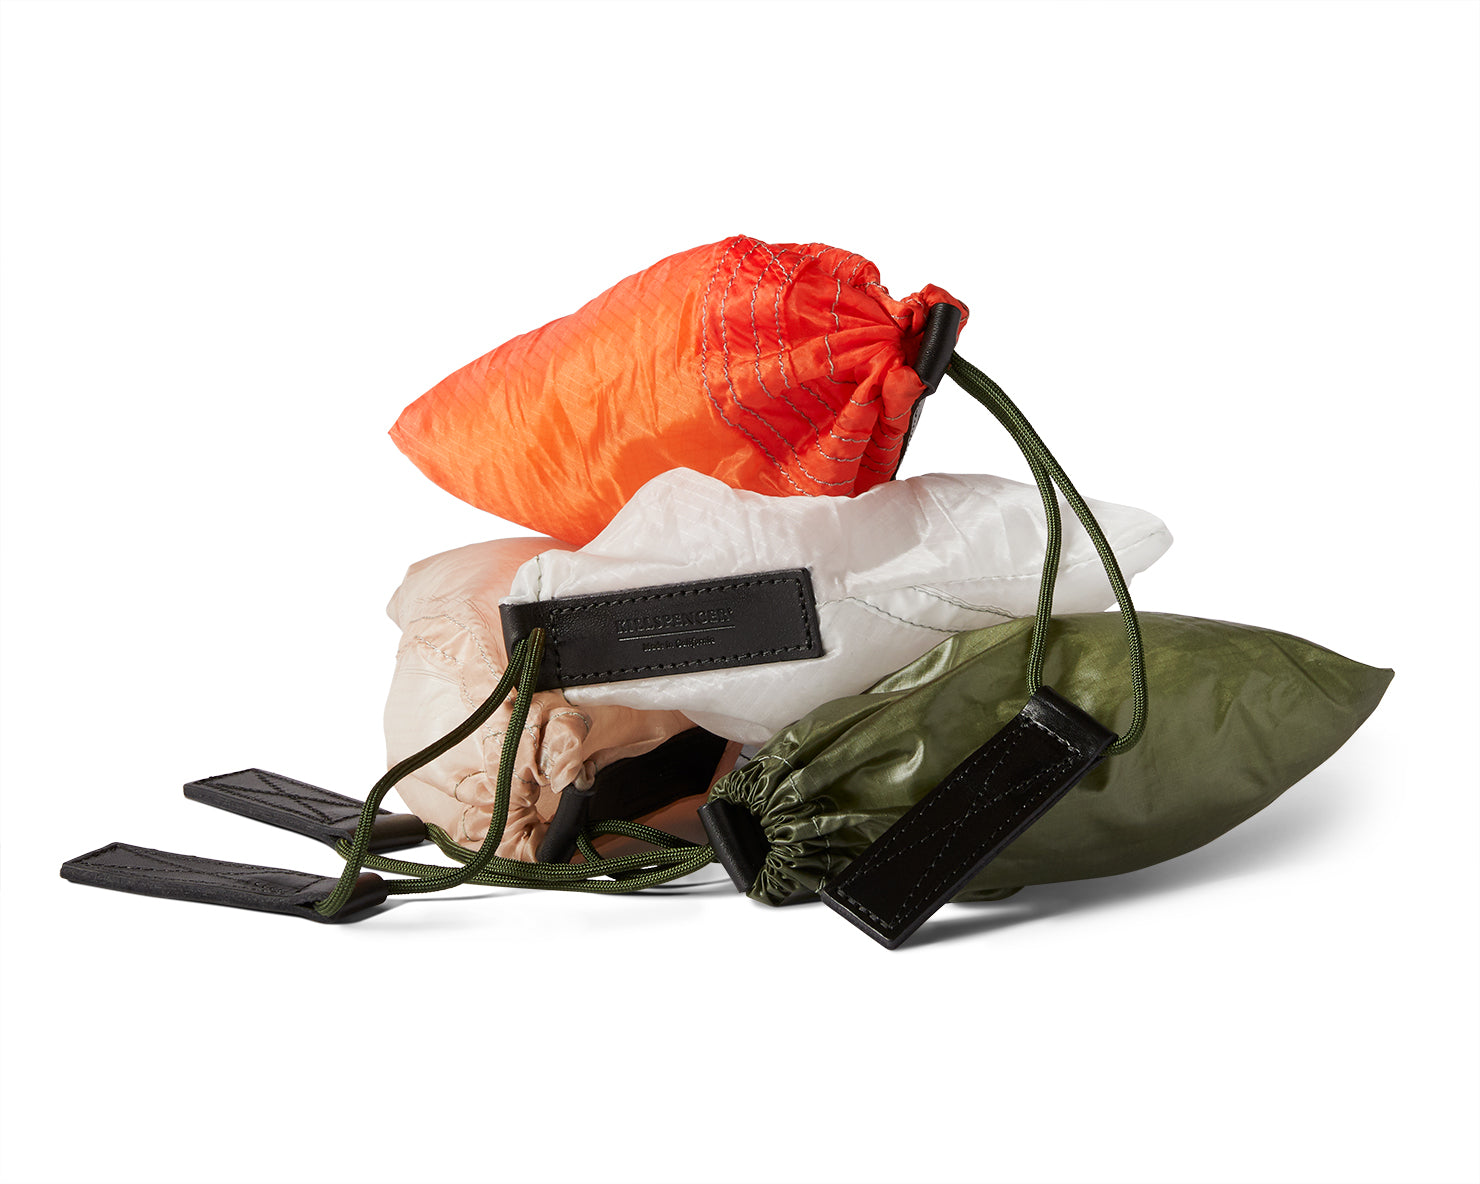 PARACHUTE BAG 2.0 - Small Accessory Bag | KILLSPENCER® - Orange Parachute